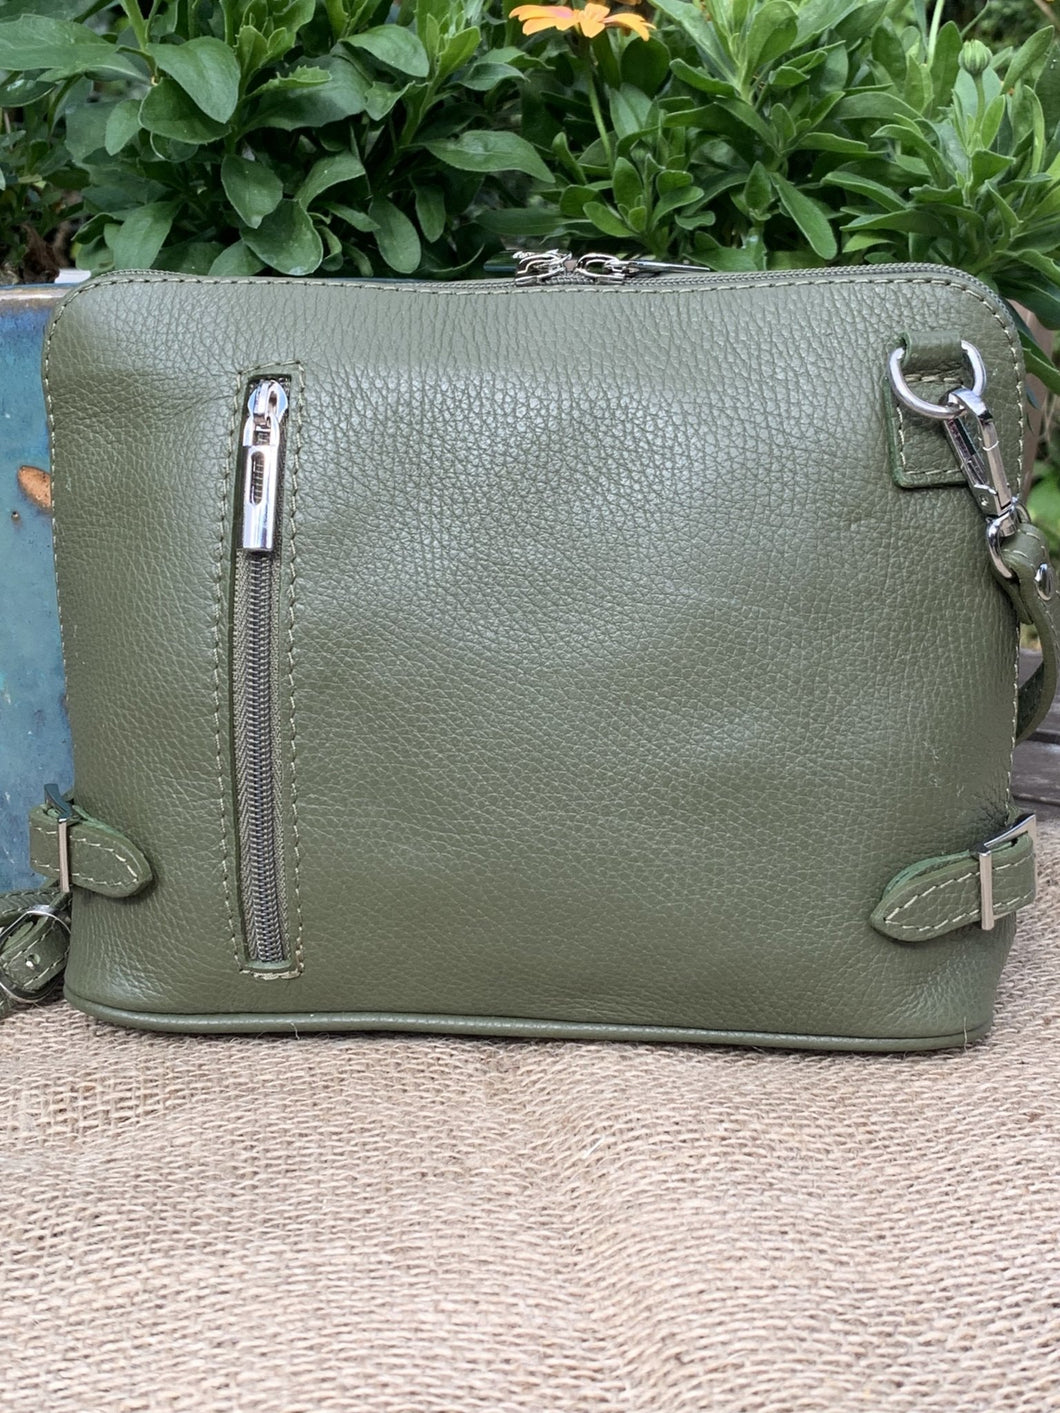 Leather Cross Body Bag - Olive Green - LavenderLime